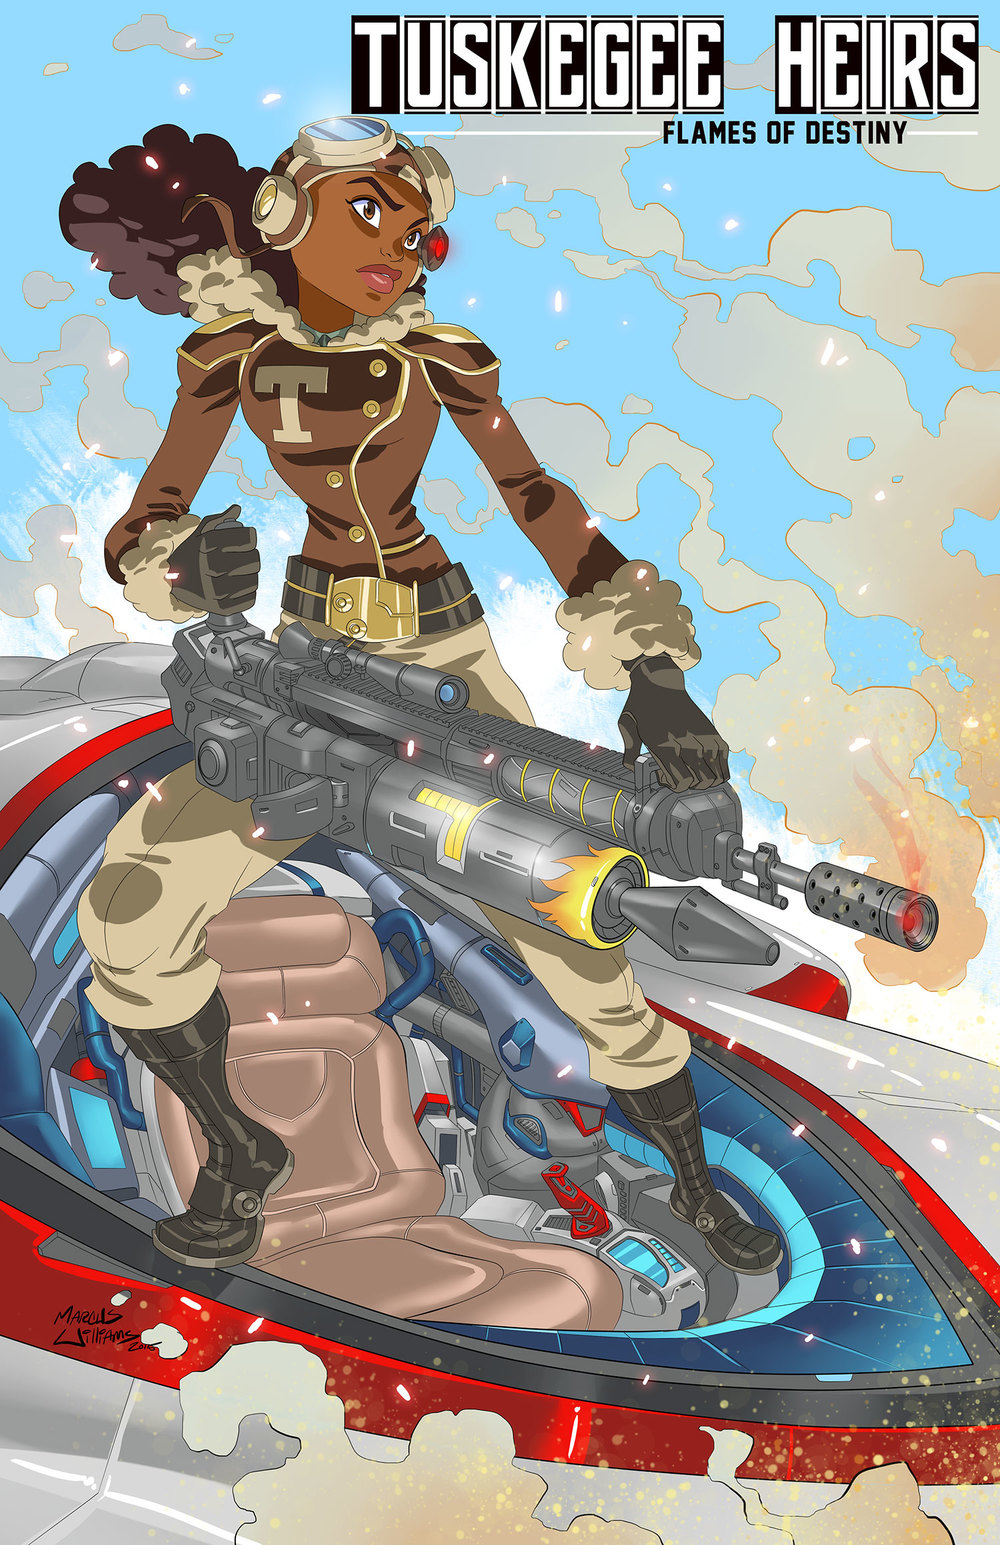 TUSKEGEE HEIRS character...